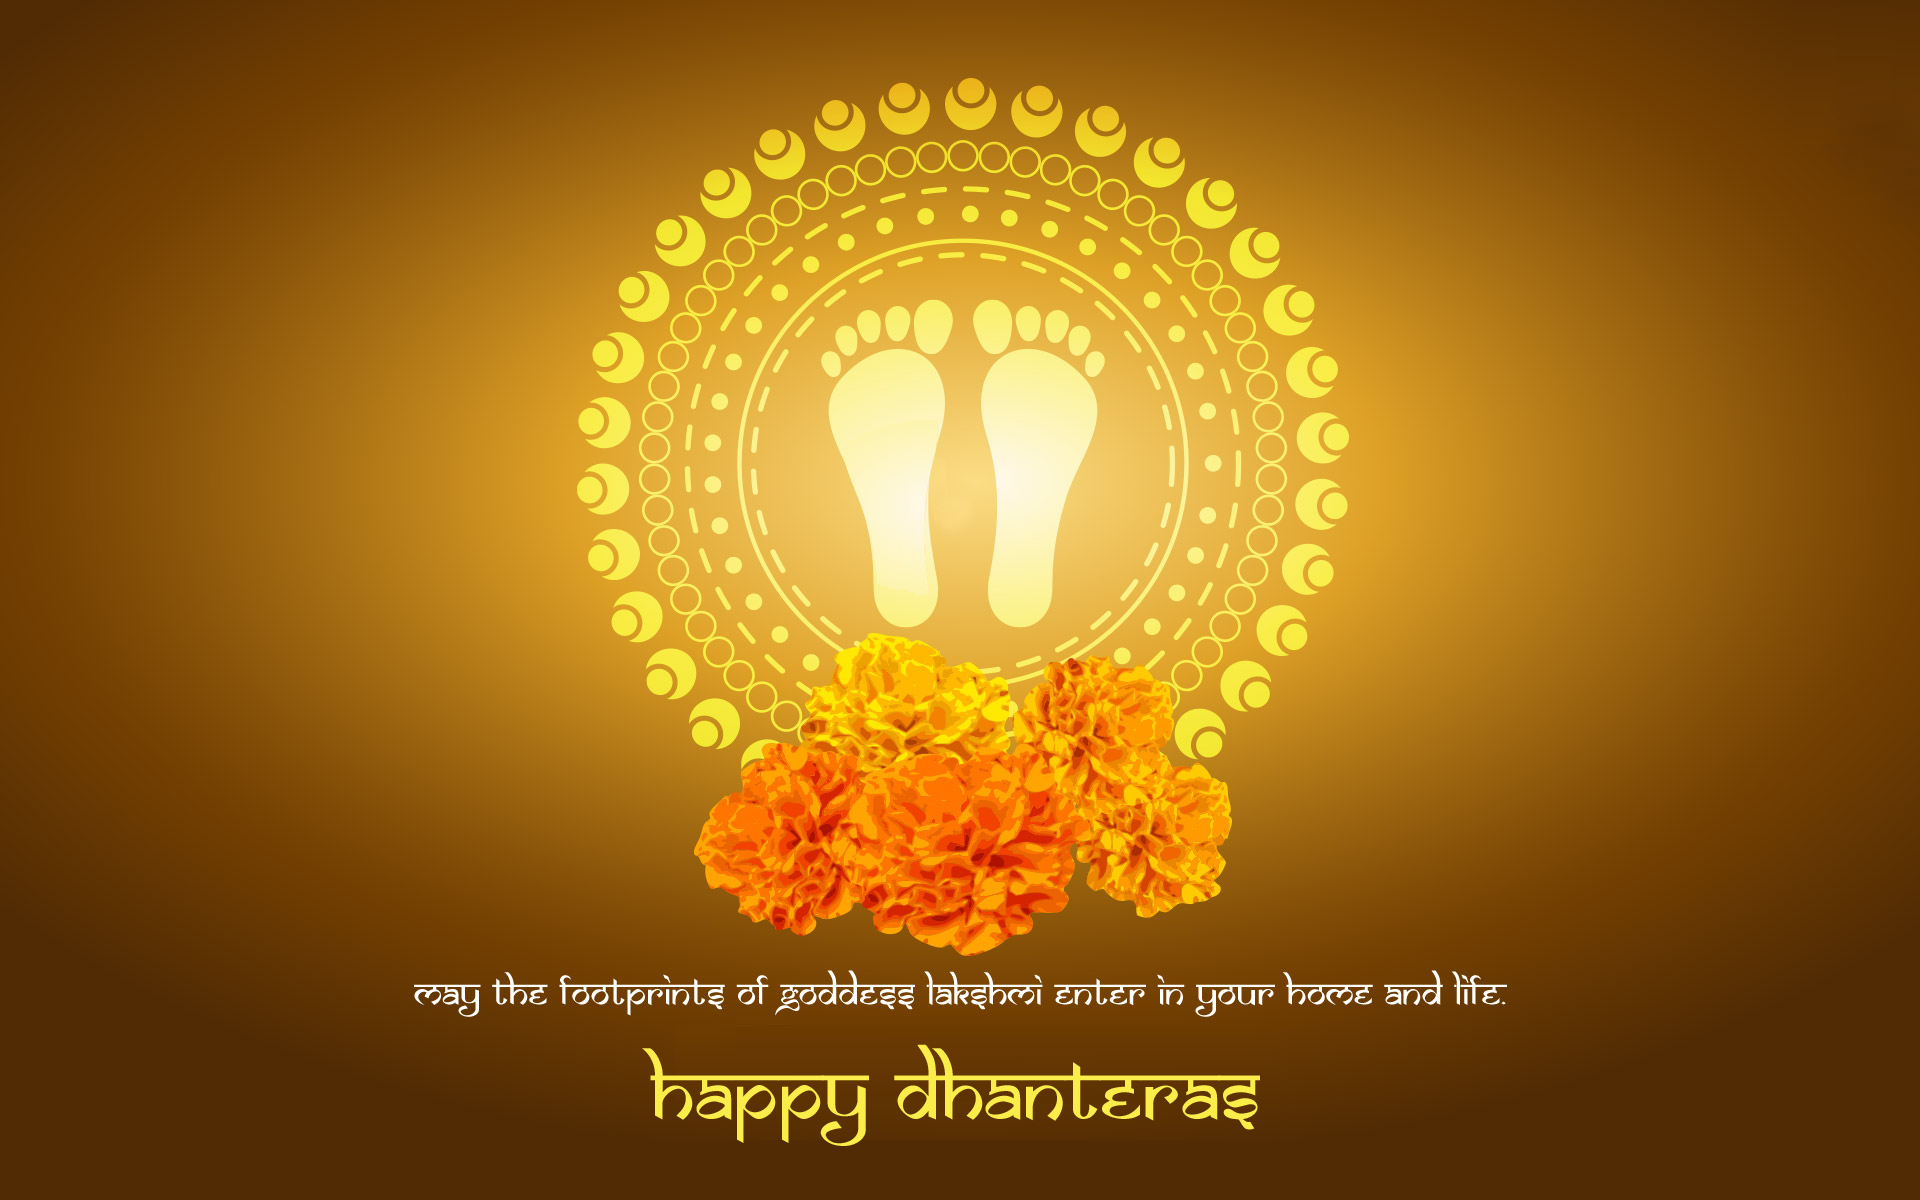 Happy Dhanteras Images Pictures Hd Wallpapers Whatsapp DP 2016 1920x1200